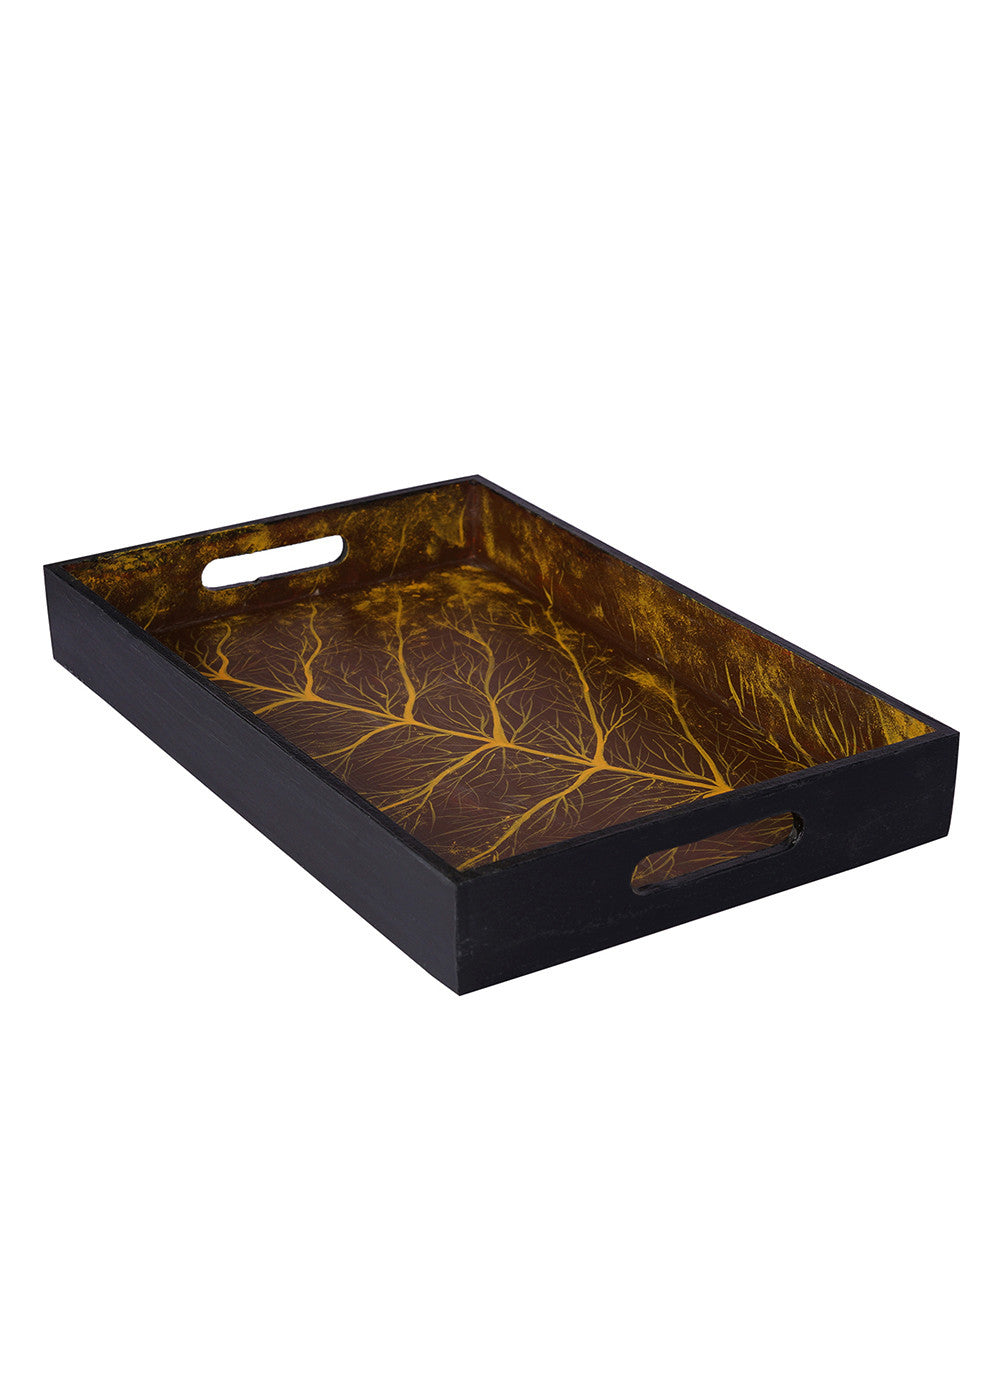 Hand-painted Serene world Exotic Tray - RANGRAGE